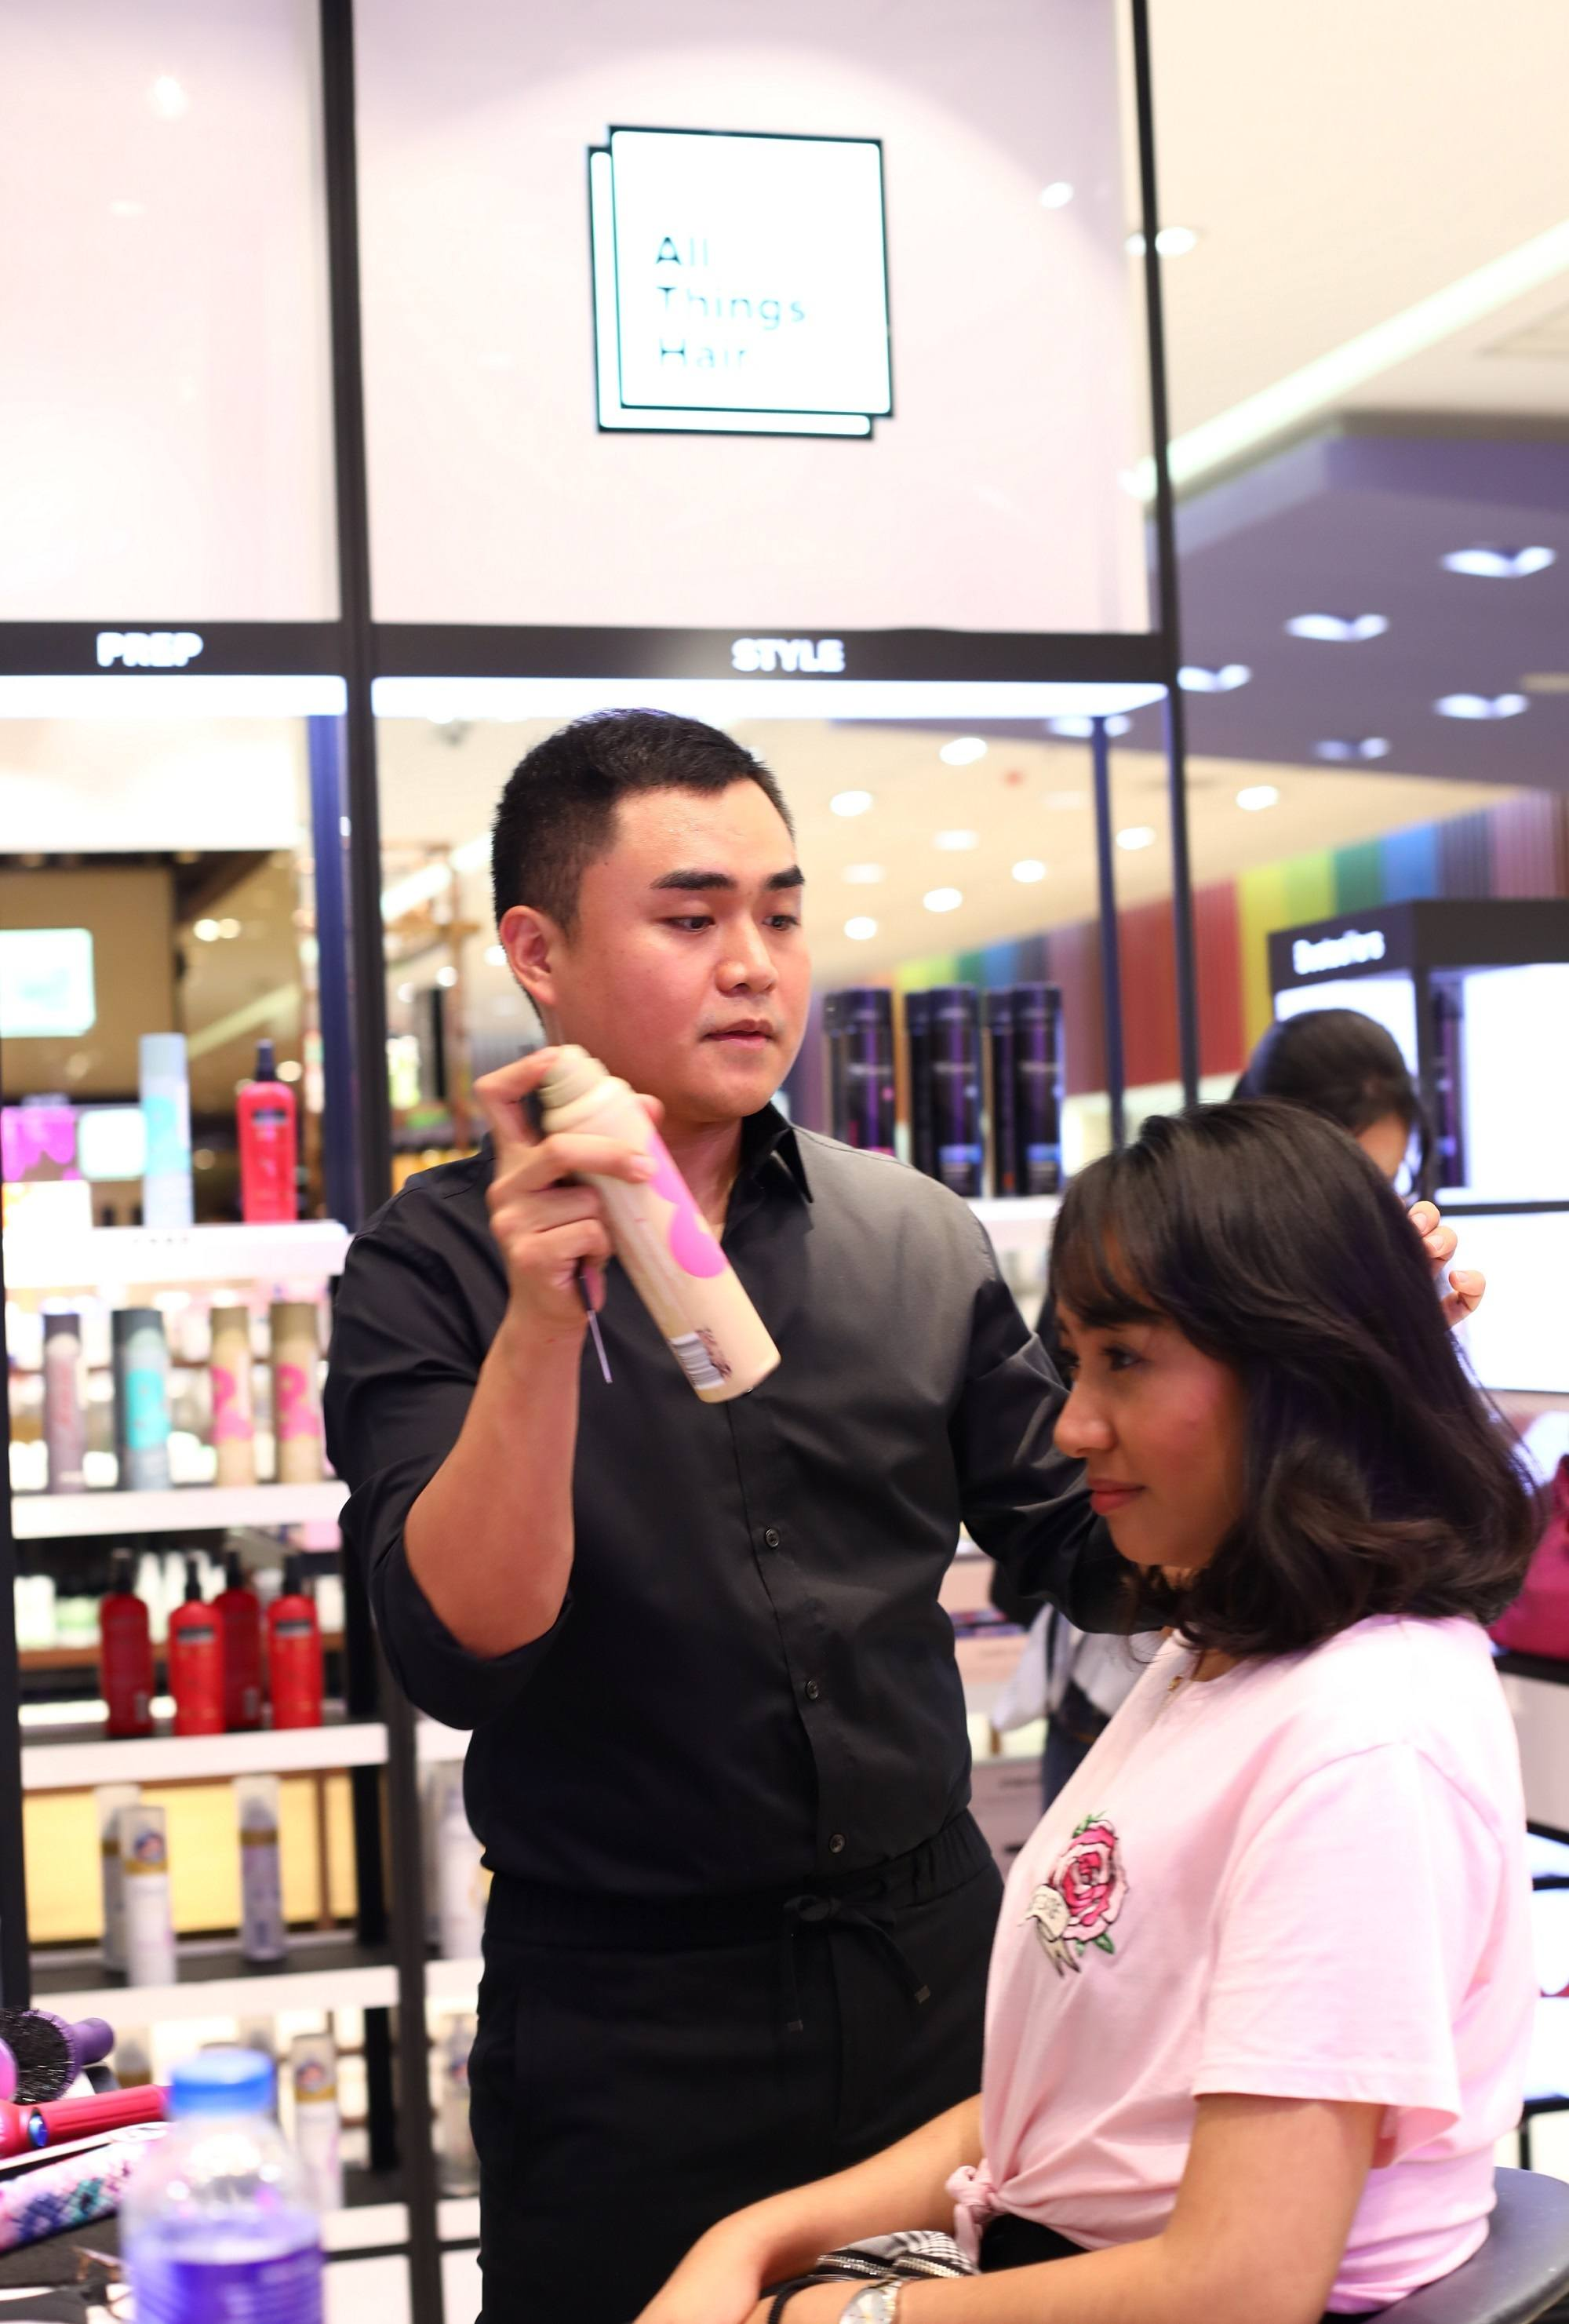 All Things Hair X Jay Wee event: Jay Wee styling the hair of one girl